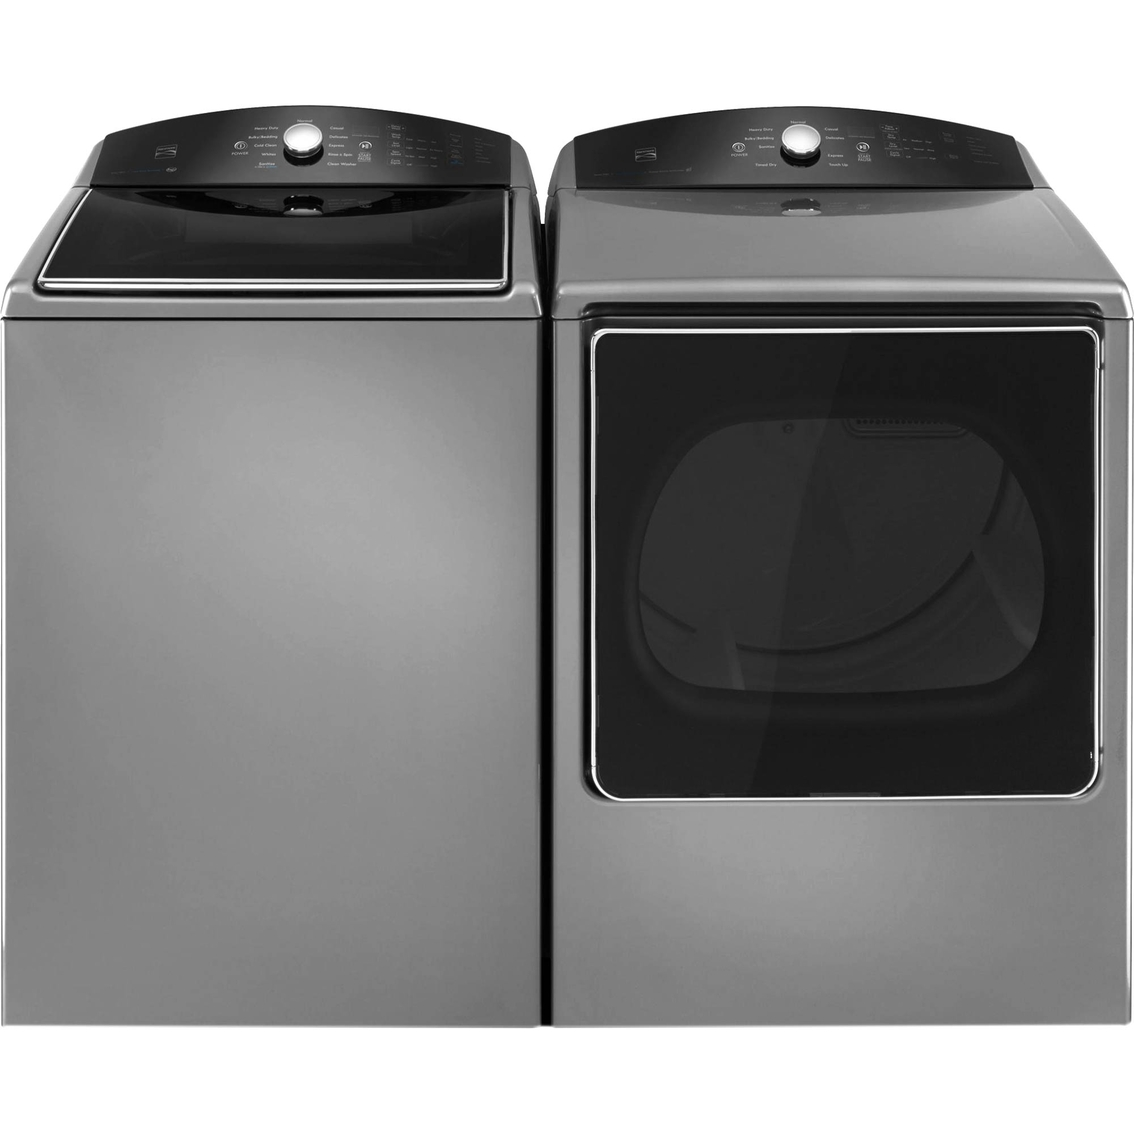 Black Washer And Dryer Combo